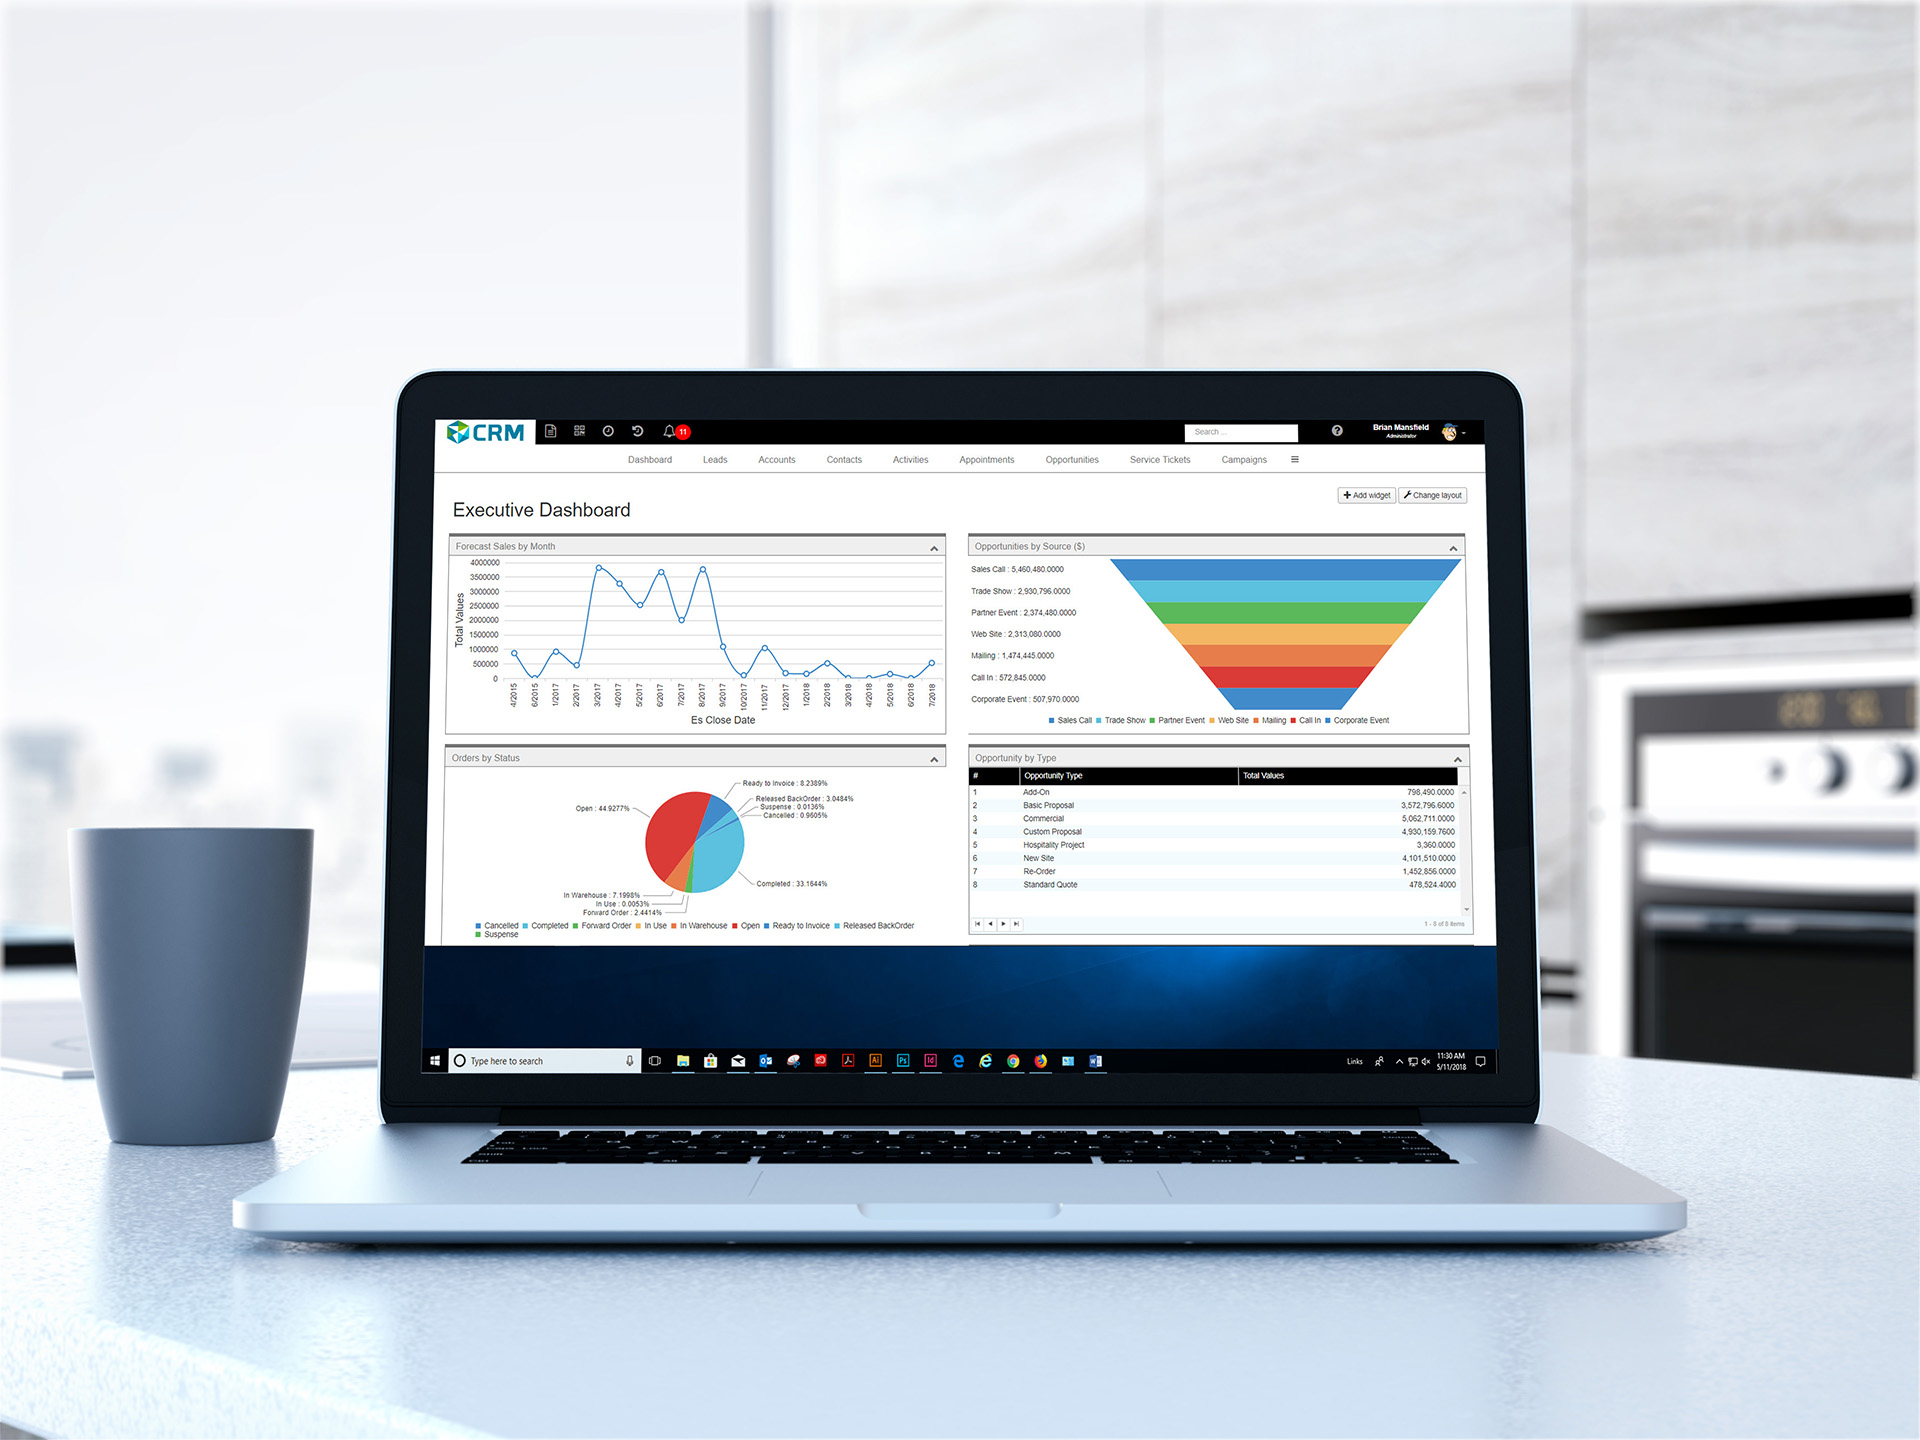 SYSPRO Demo - SYSPRO CRM Dashboard